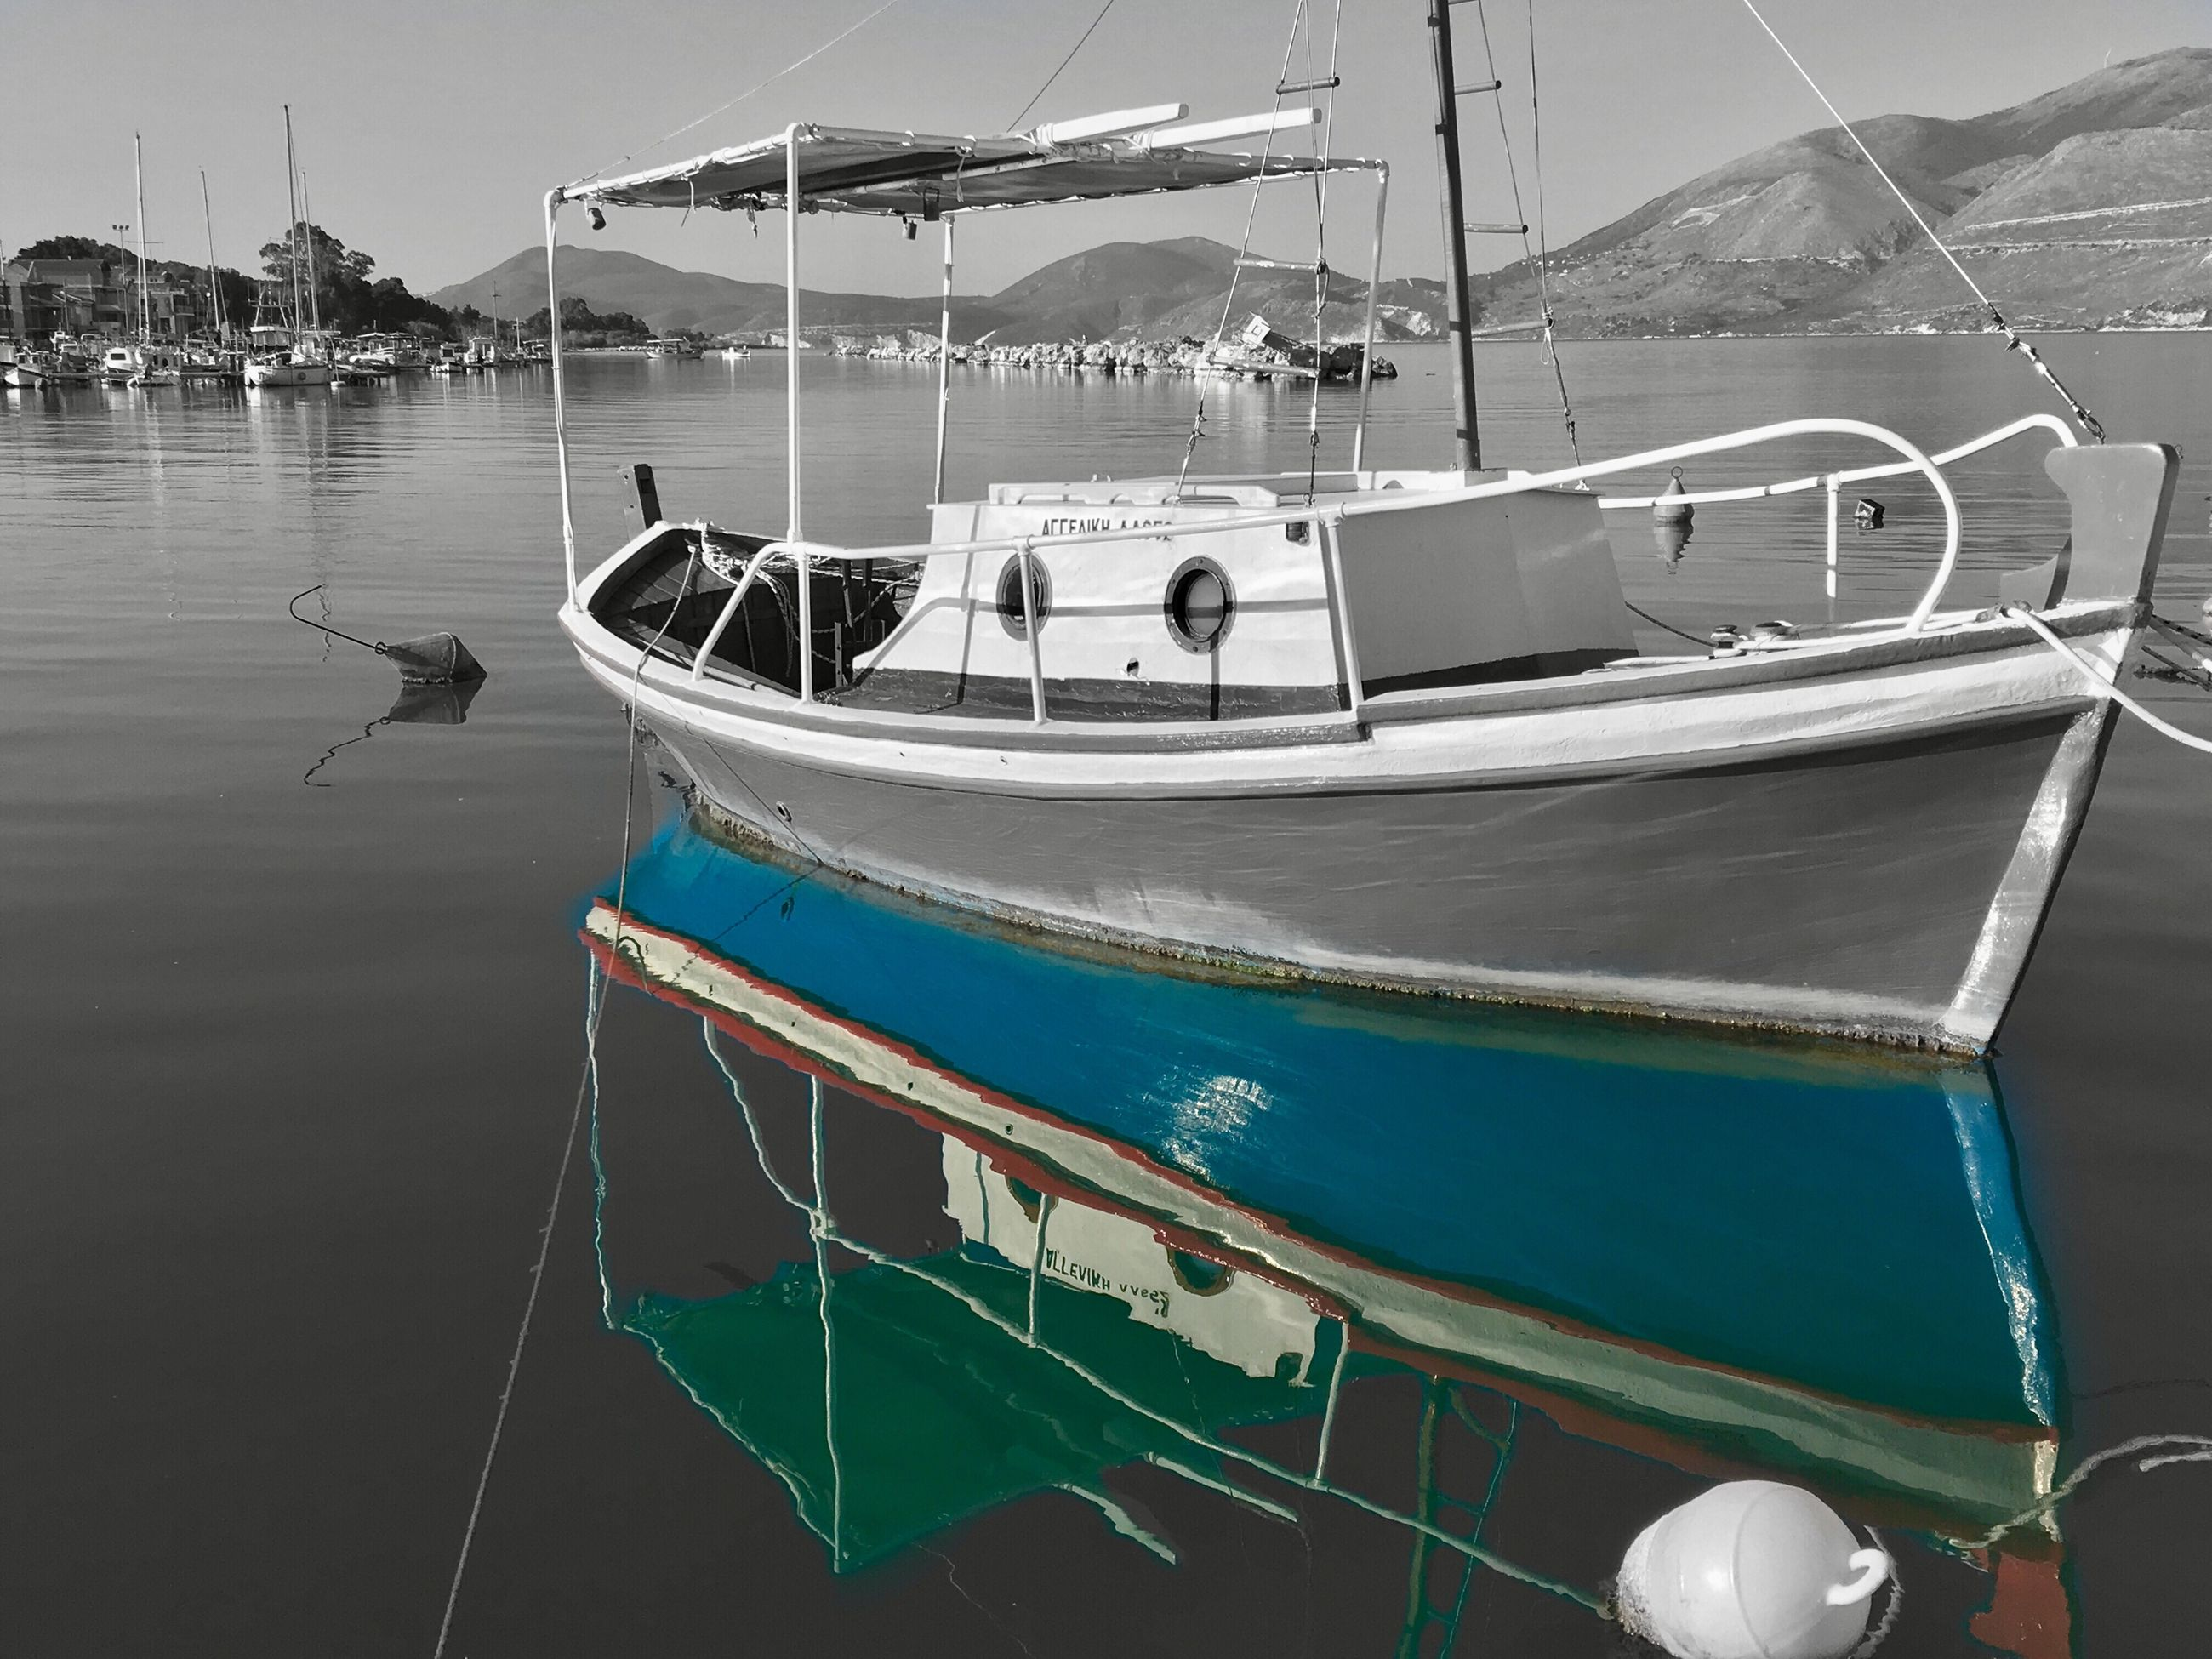 nautical vessel, transportation, water, mode of transport, moored, harbor, sea, outdoors, no people, day, yacht